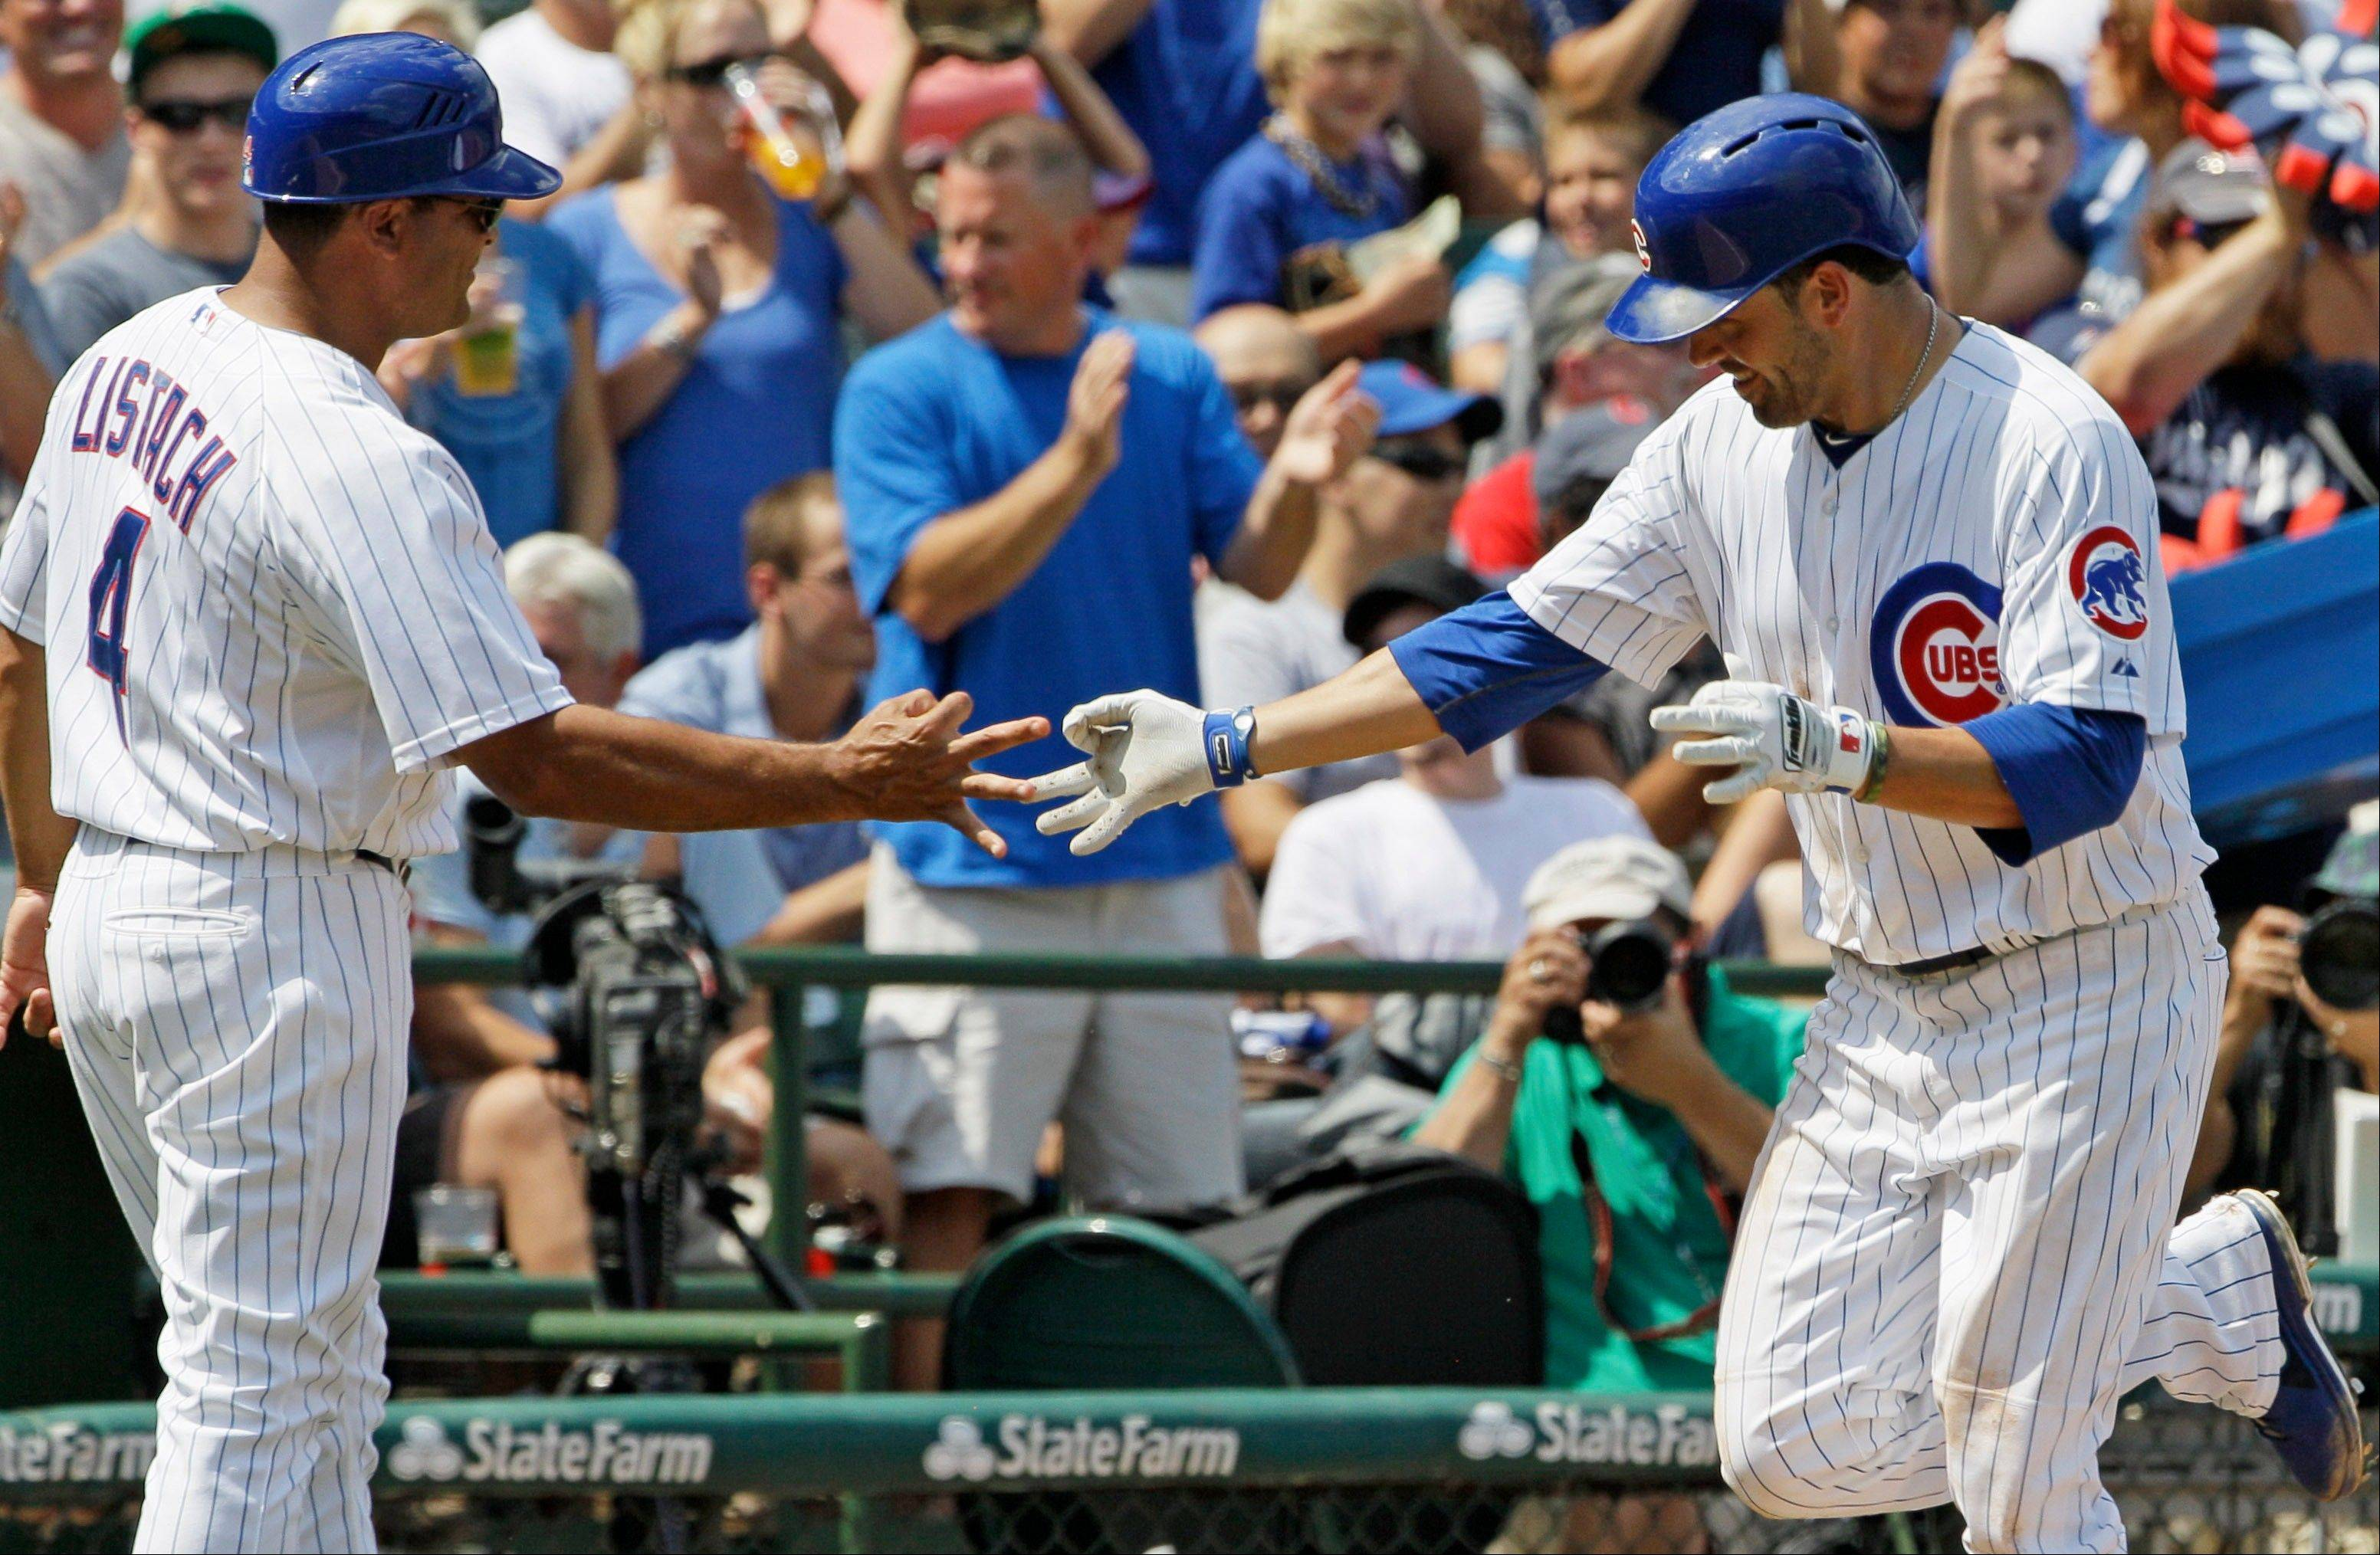 Cubs outfielder David DeJesus, right, celebrates with third base coach Pat Listach after hitting a solo home run Wednesday during the third inning against the Houston Astros.